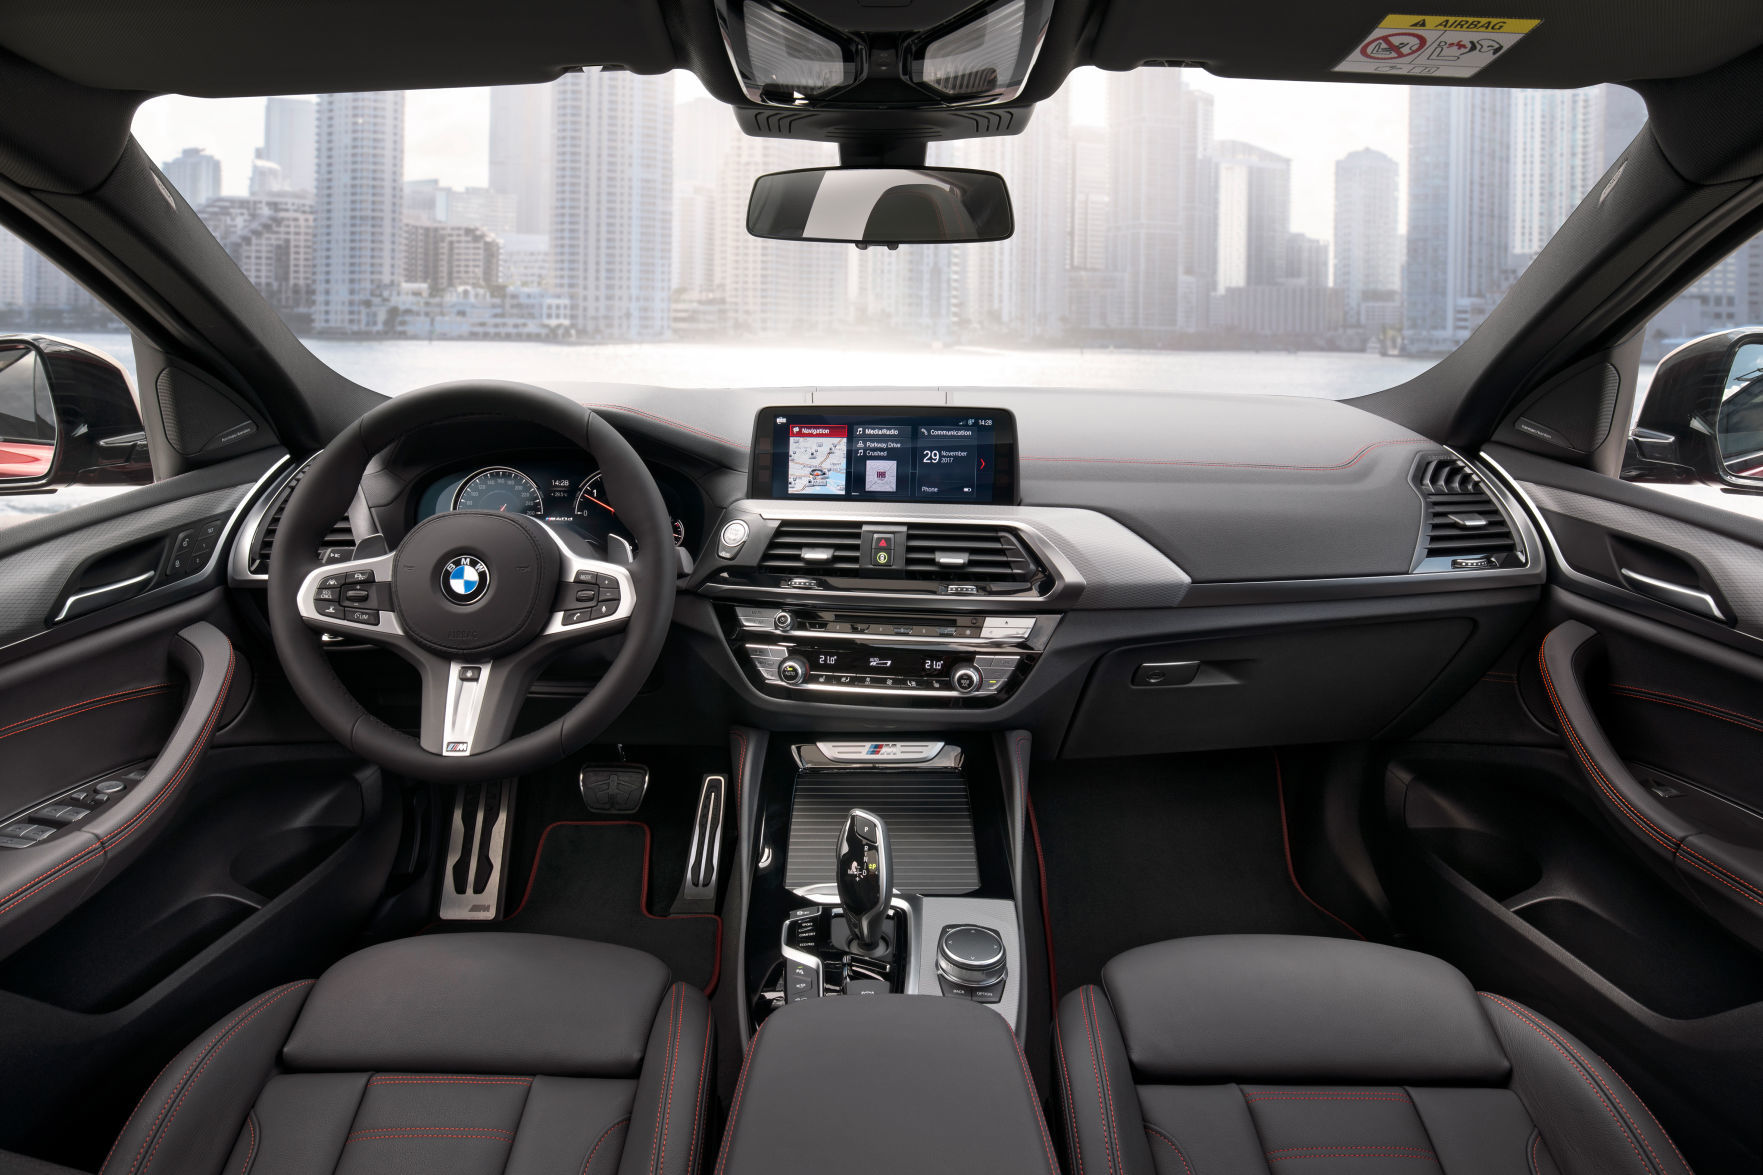 Auto Review Bmw X4 Sports Activity Coupe Gets A Redesign For Its Second Generation Economy Business Fredericknewspost Com